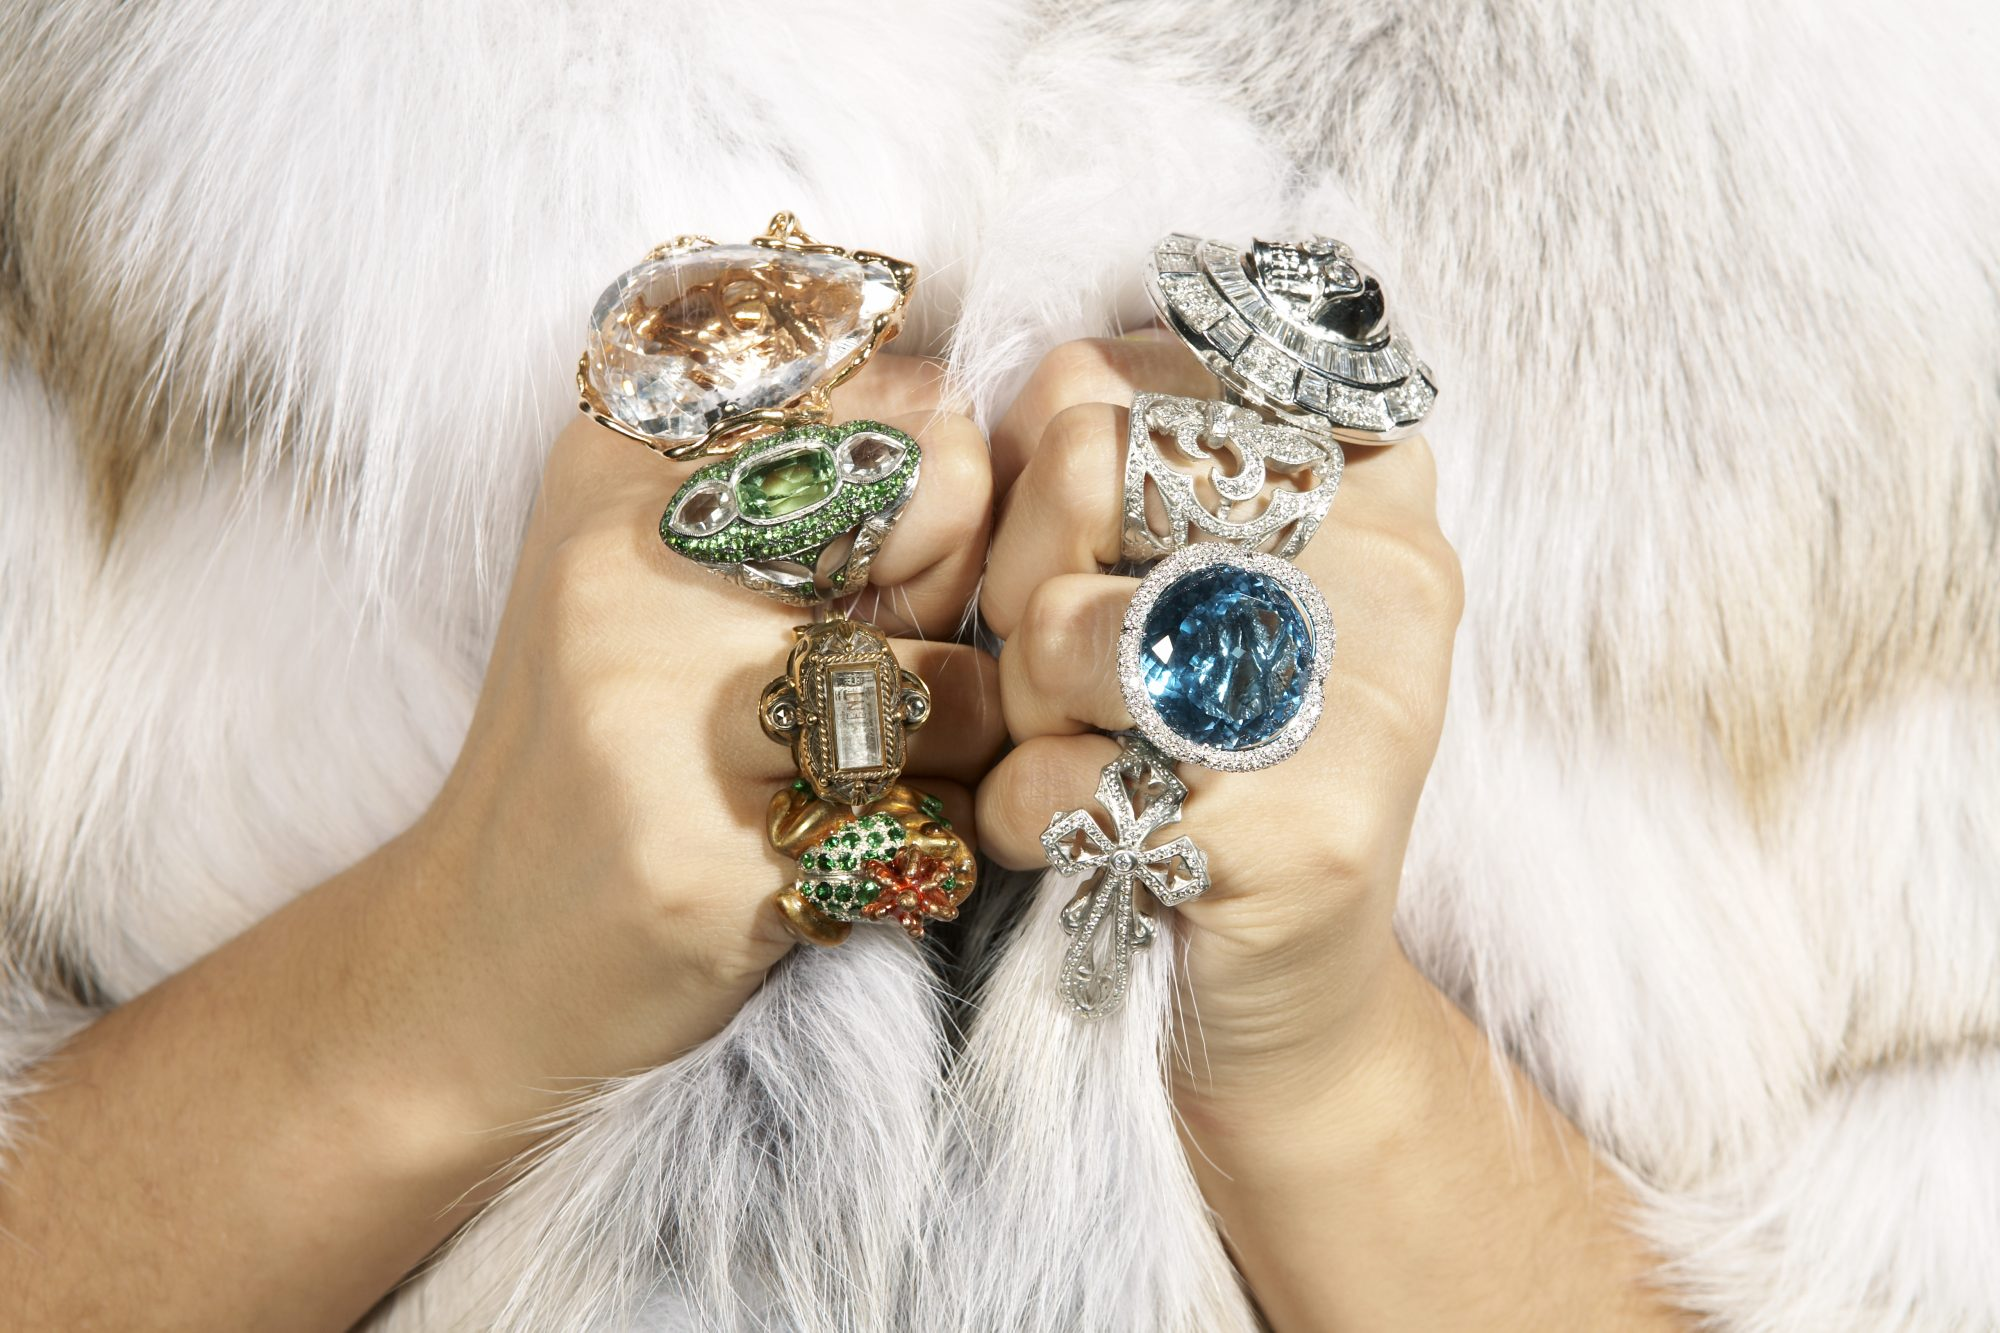 Rich Lady with Lots Of Rings